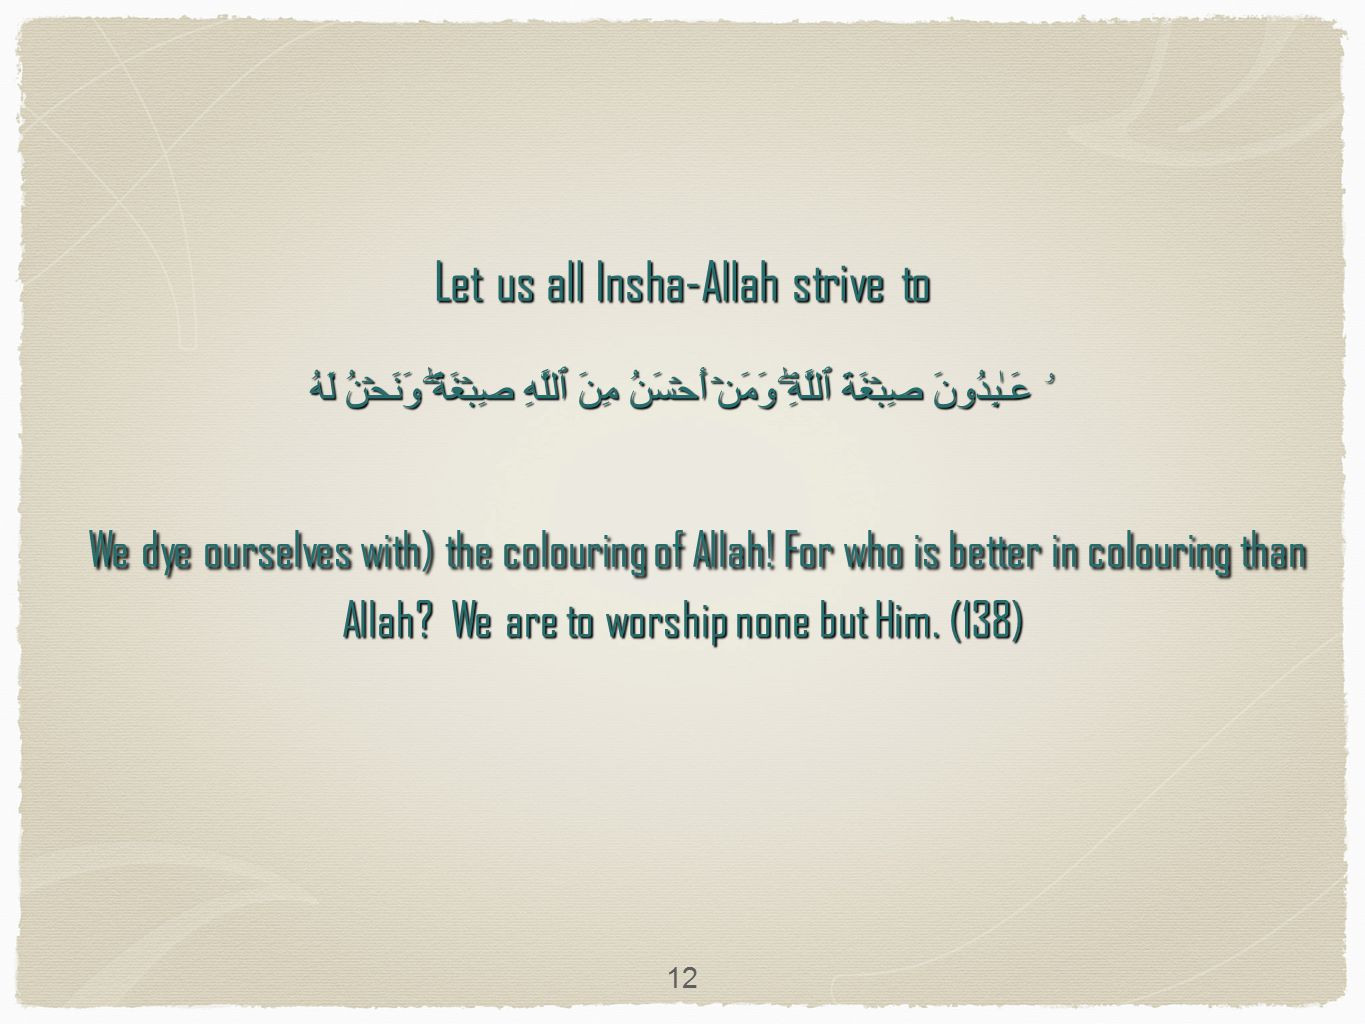 Let us all Insha-Allah strive to صِبۡغَةَ ٱللَّهِ‌ۖ وَمَنۡ أَحۡسَنُ مِنَ ٱللَّهِ صِبۡغَةً۬‌ۖ وَنَحۡنُ لَهُ ۥ عَـٰبِدُونَ We dye ourselves with) the colouring of Allah.